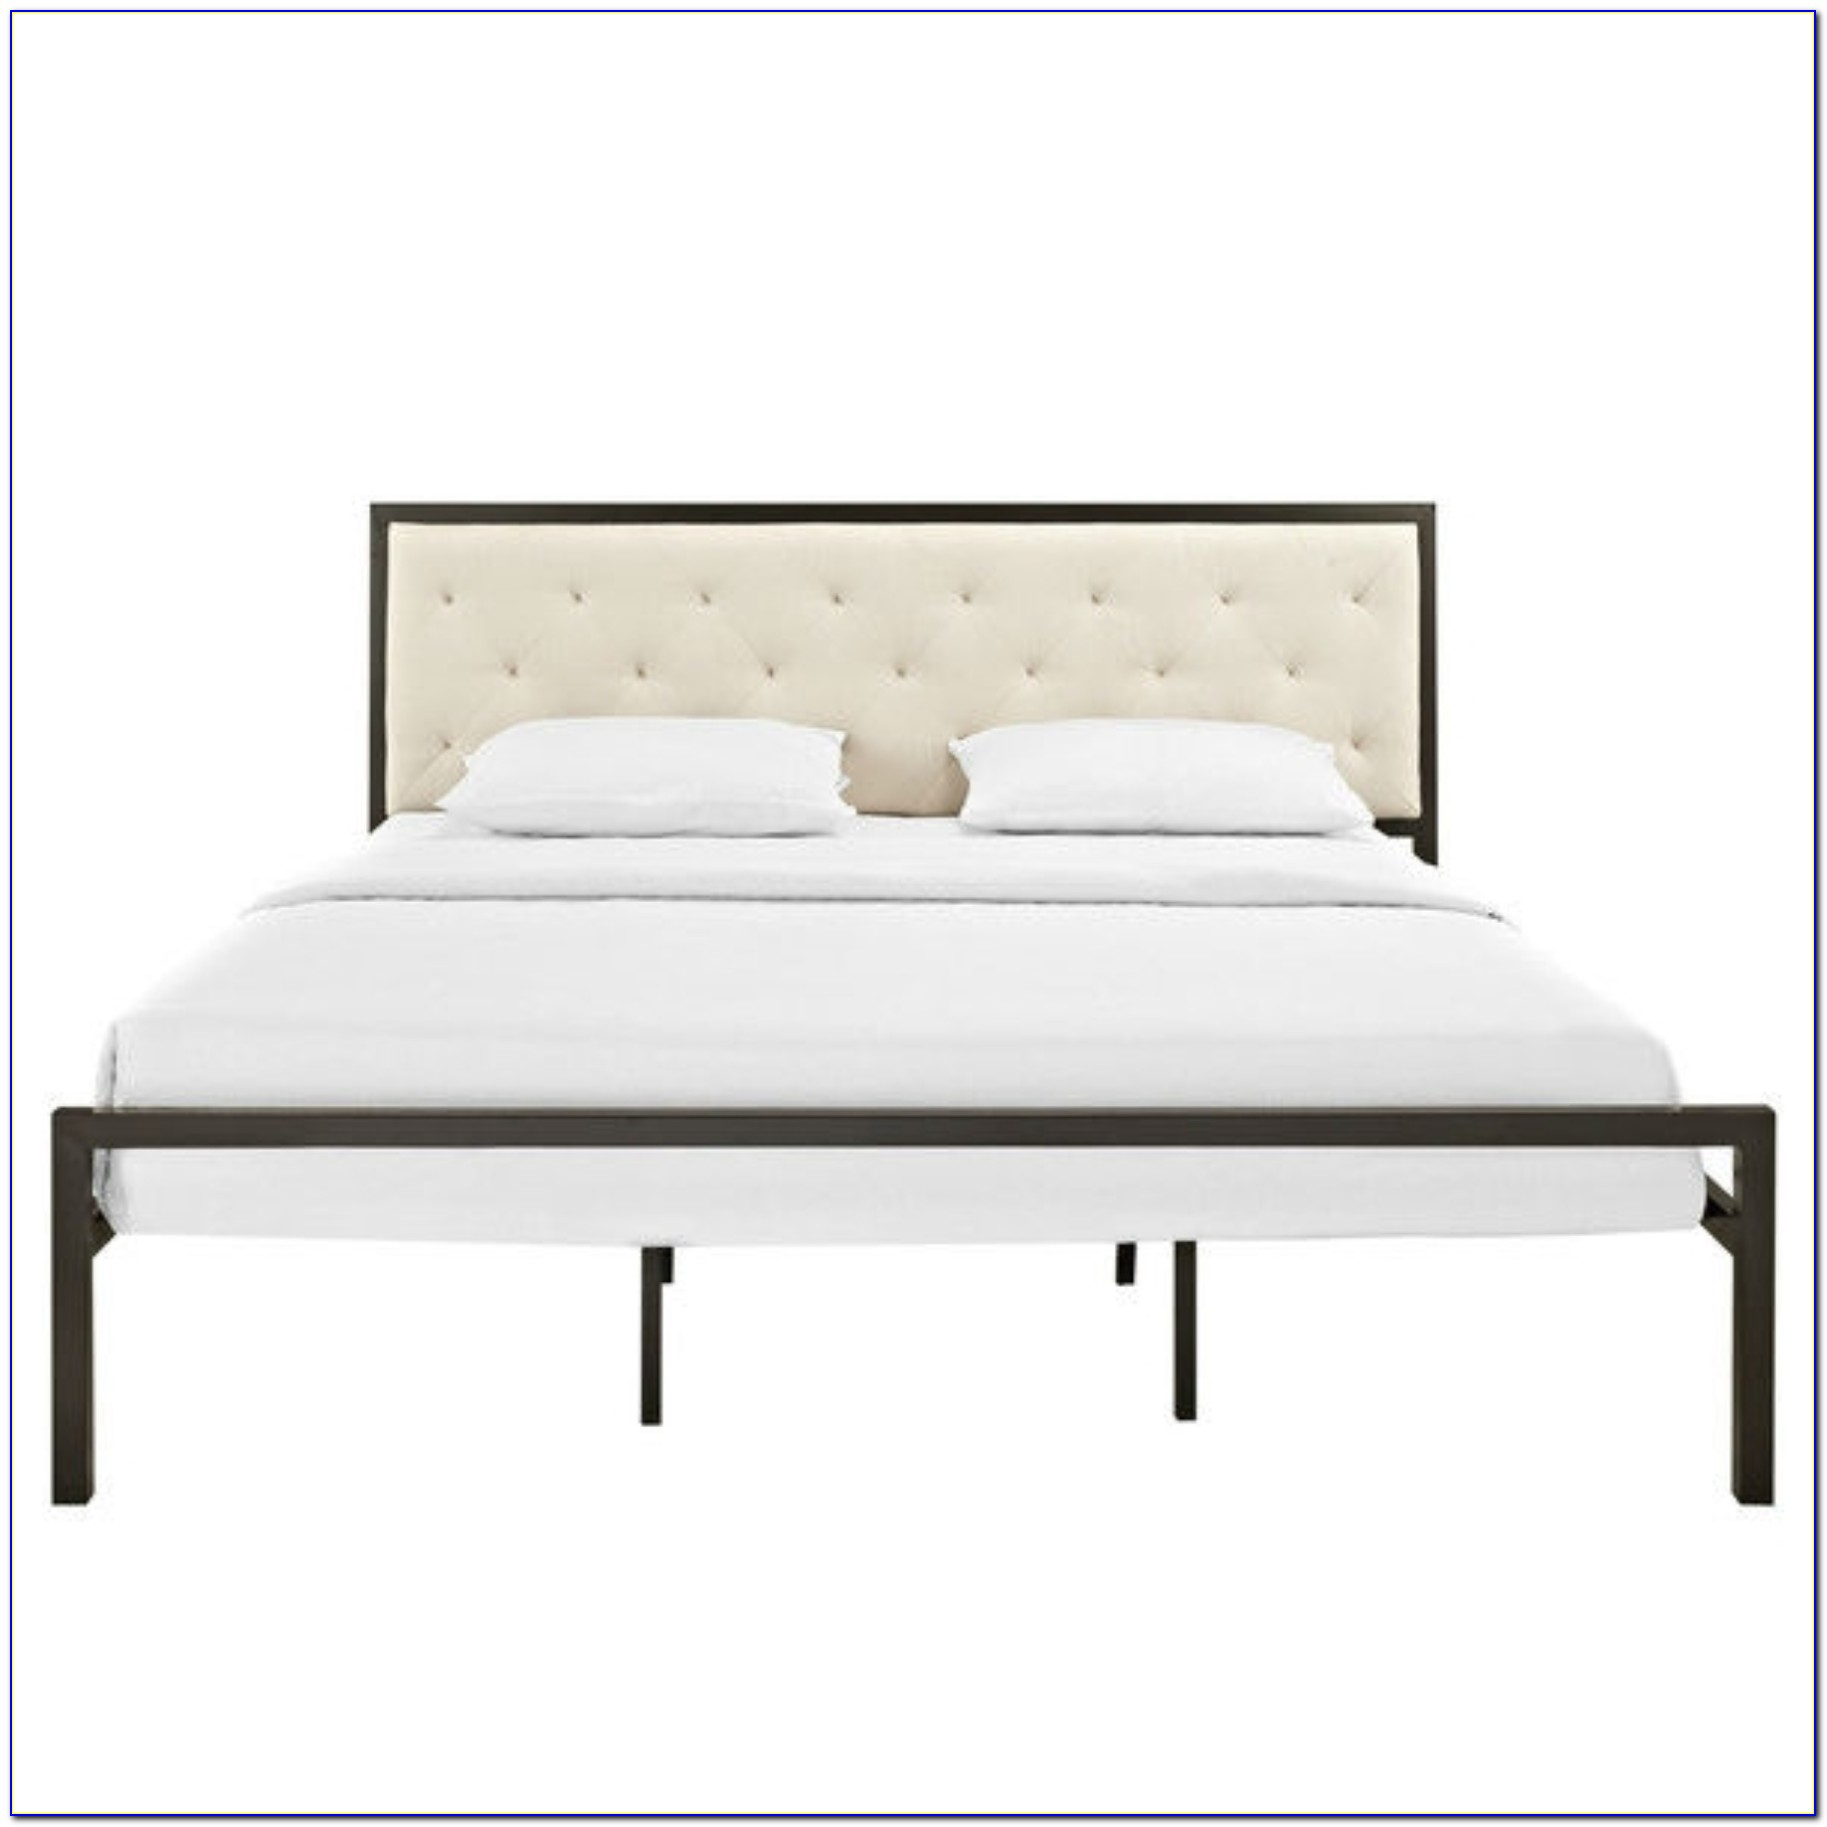 Upholstered Bed Frame Without Headboard